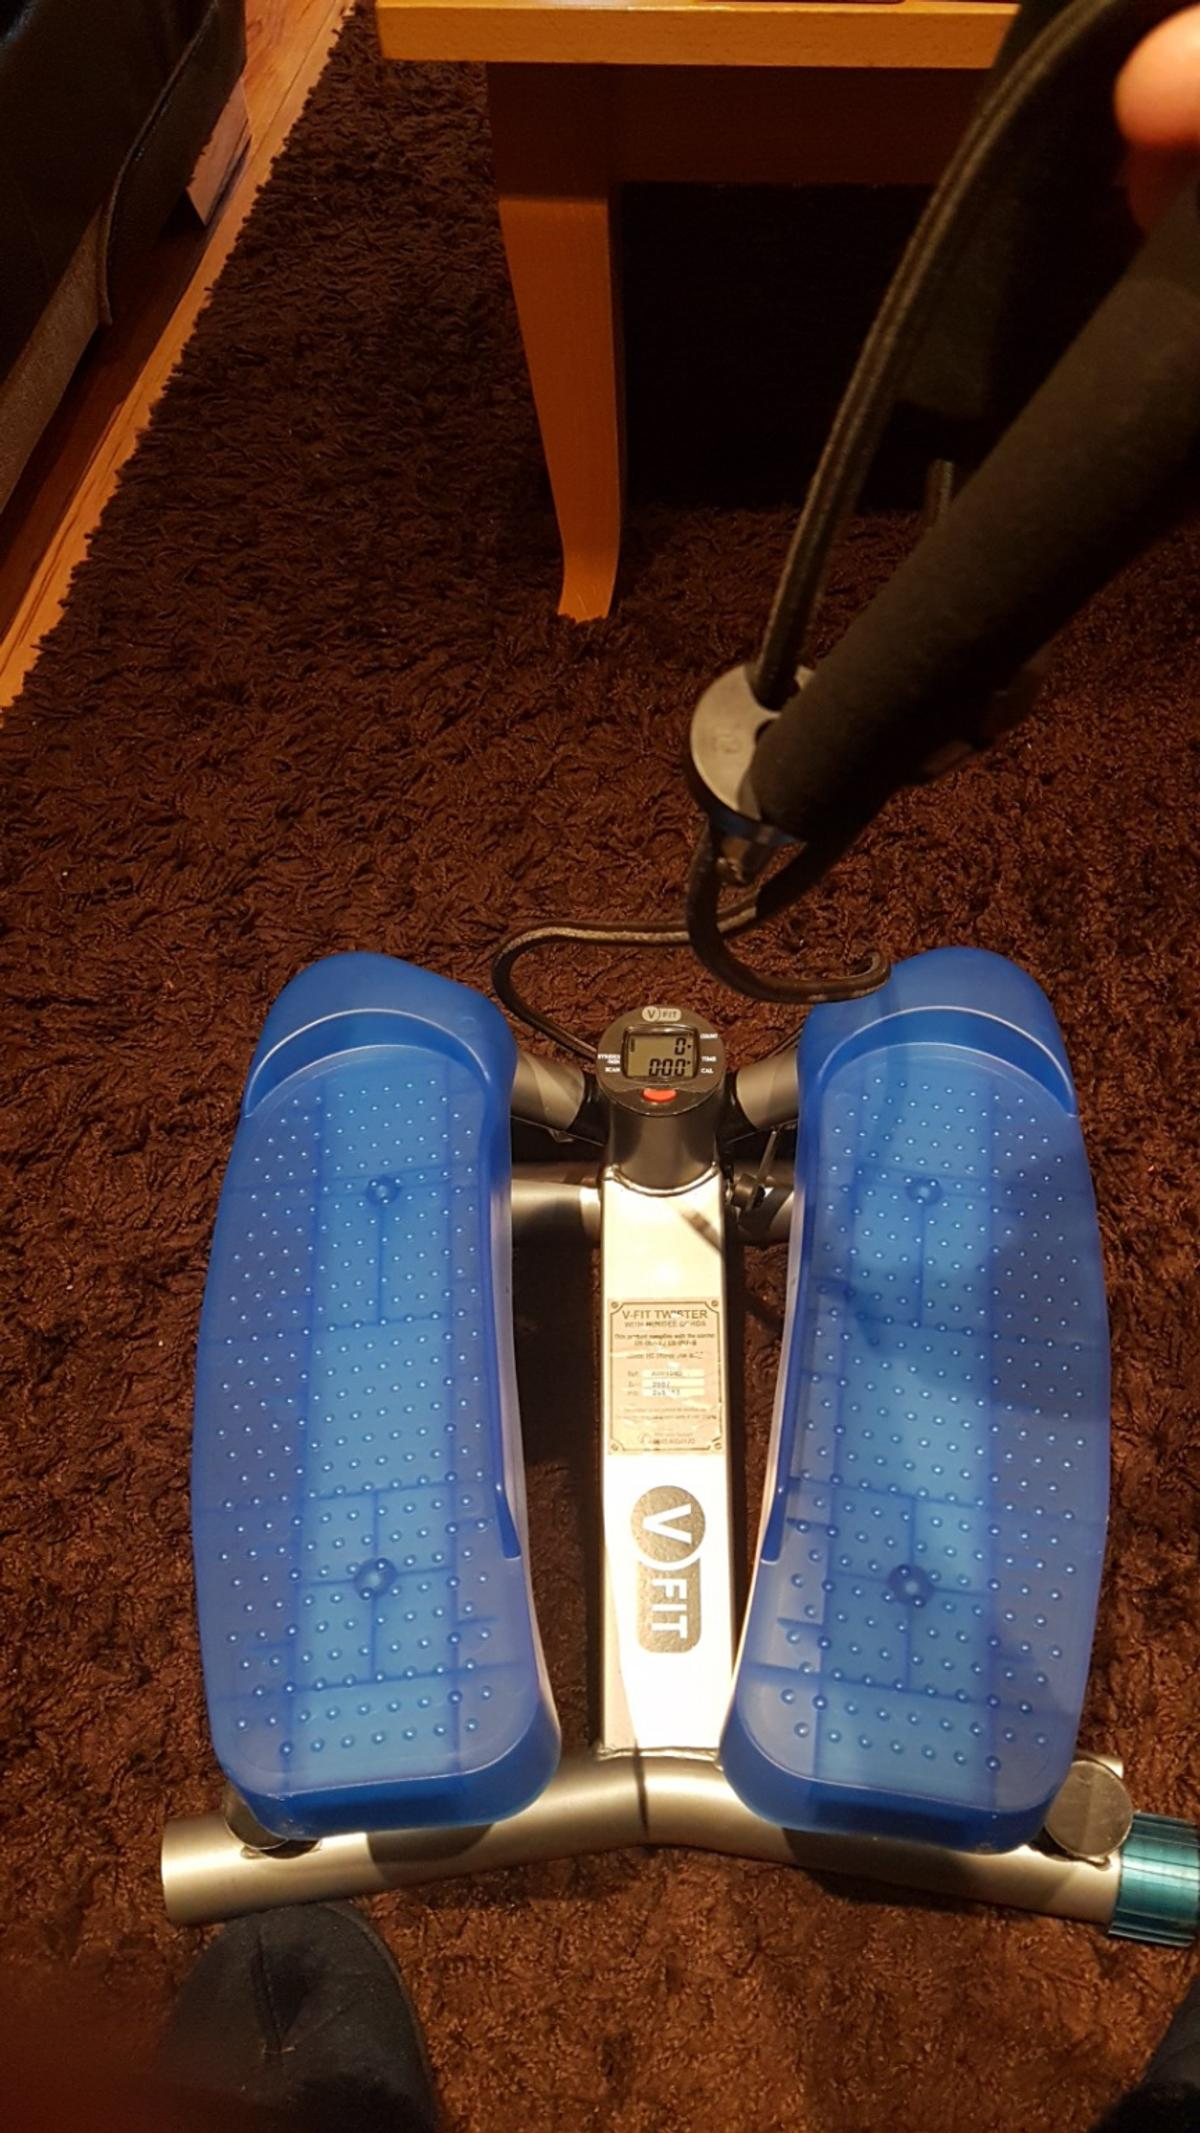 V Fit Twisted with bungee cords Has a timer in good condition